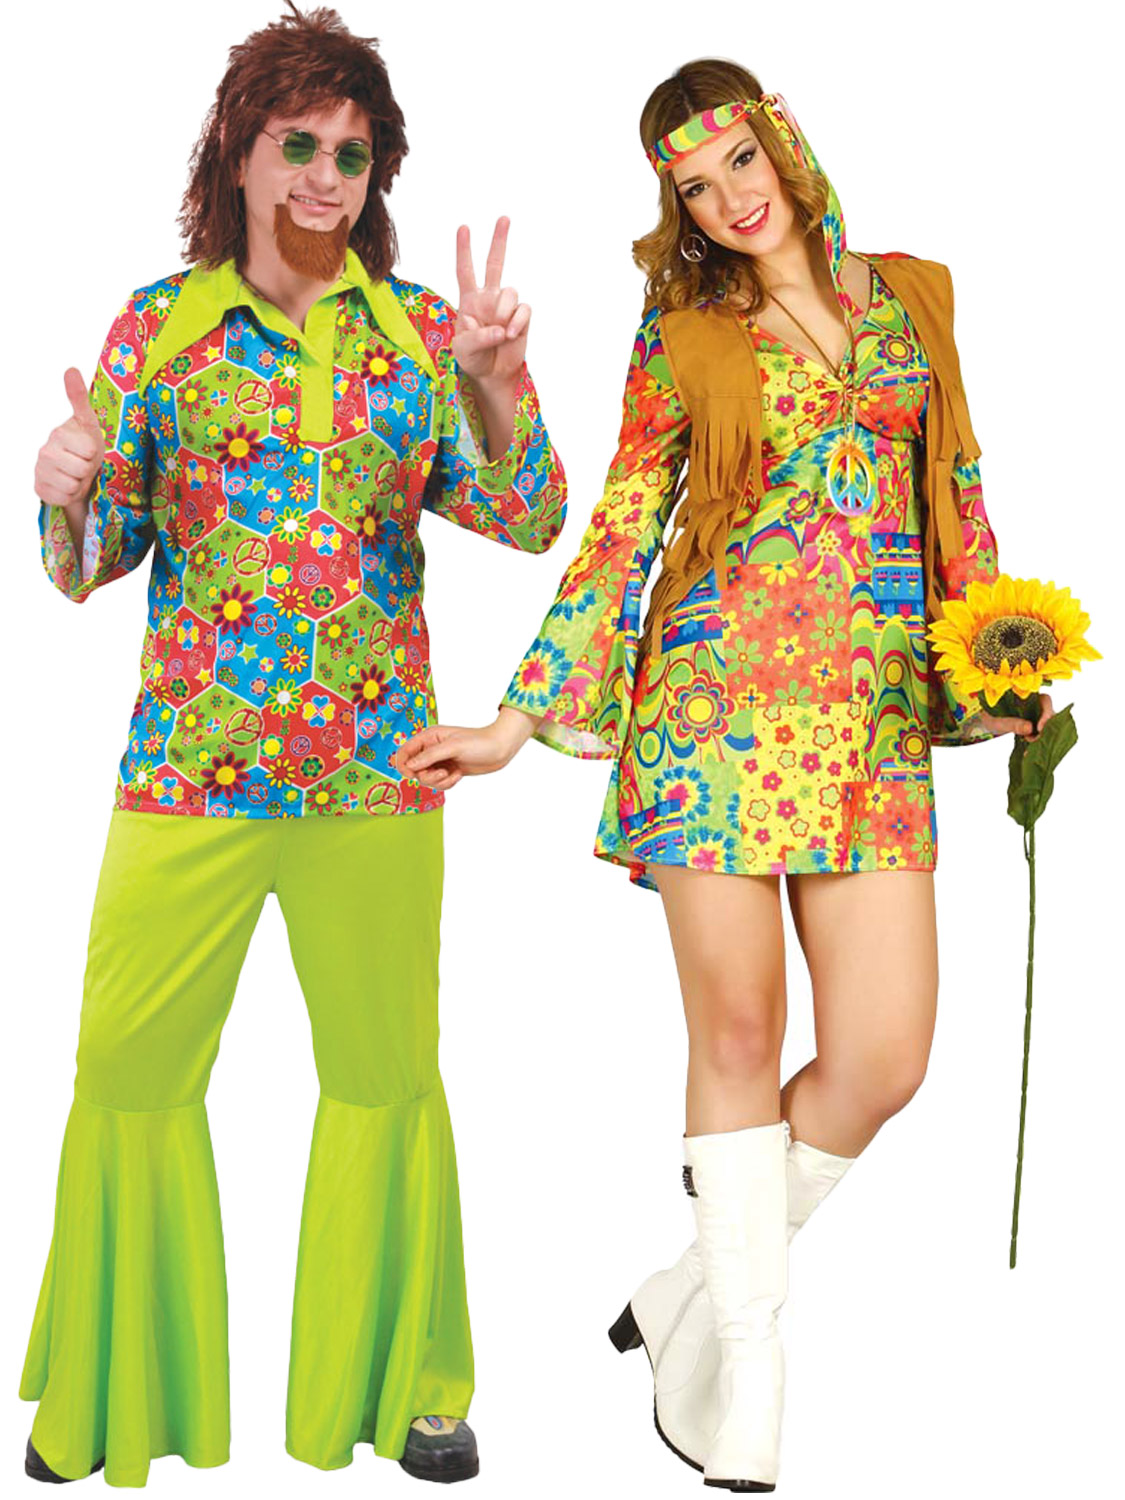 Details about Adults 1960s Hippy Costume Mens Ladies 70s Hippie Fancy Dress Psychedelic Outfit